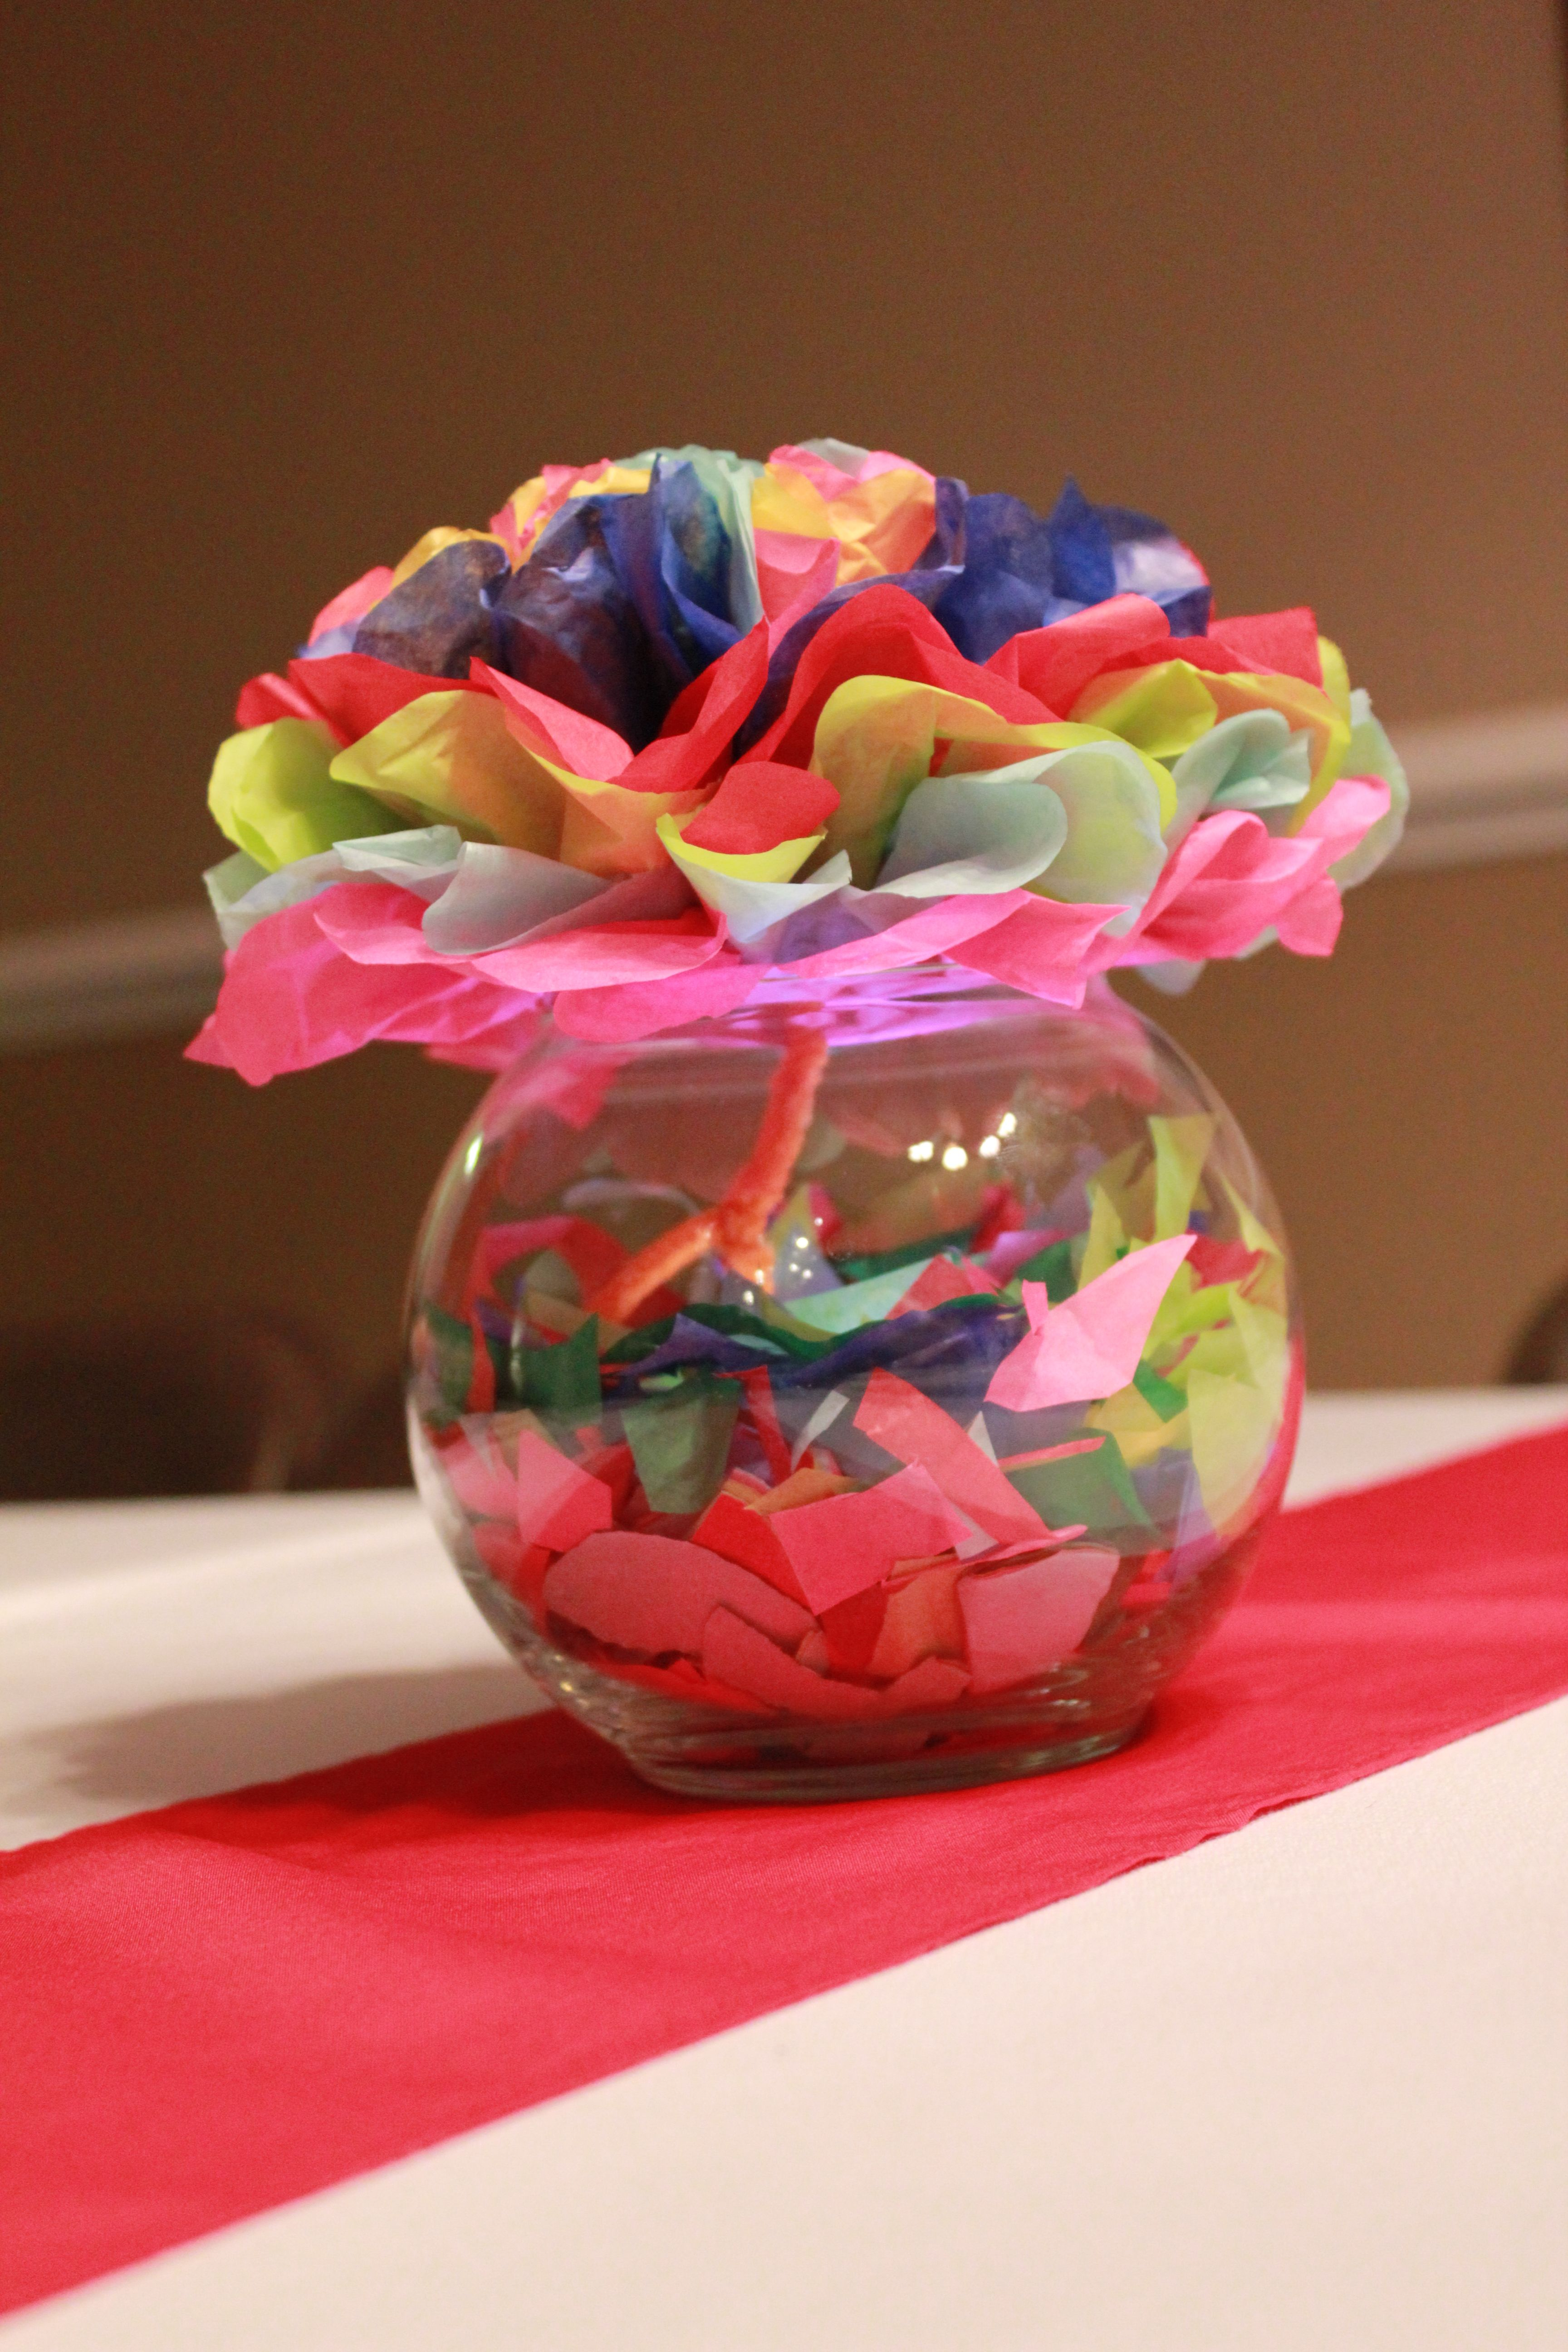 Fiesta table decorations ideas - Fiesta Party Table Centerpieces By Nikki